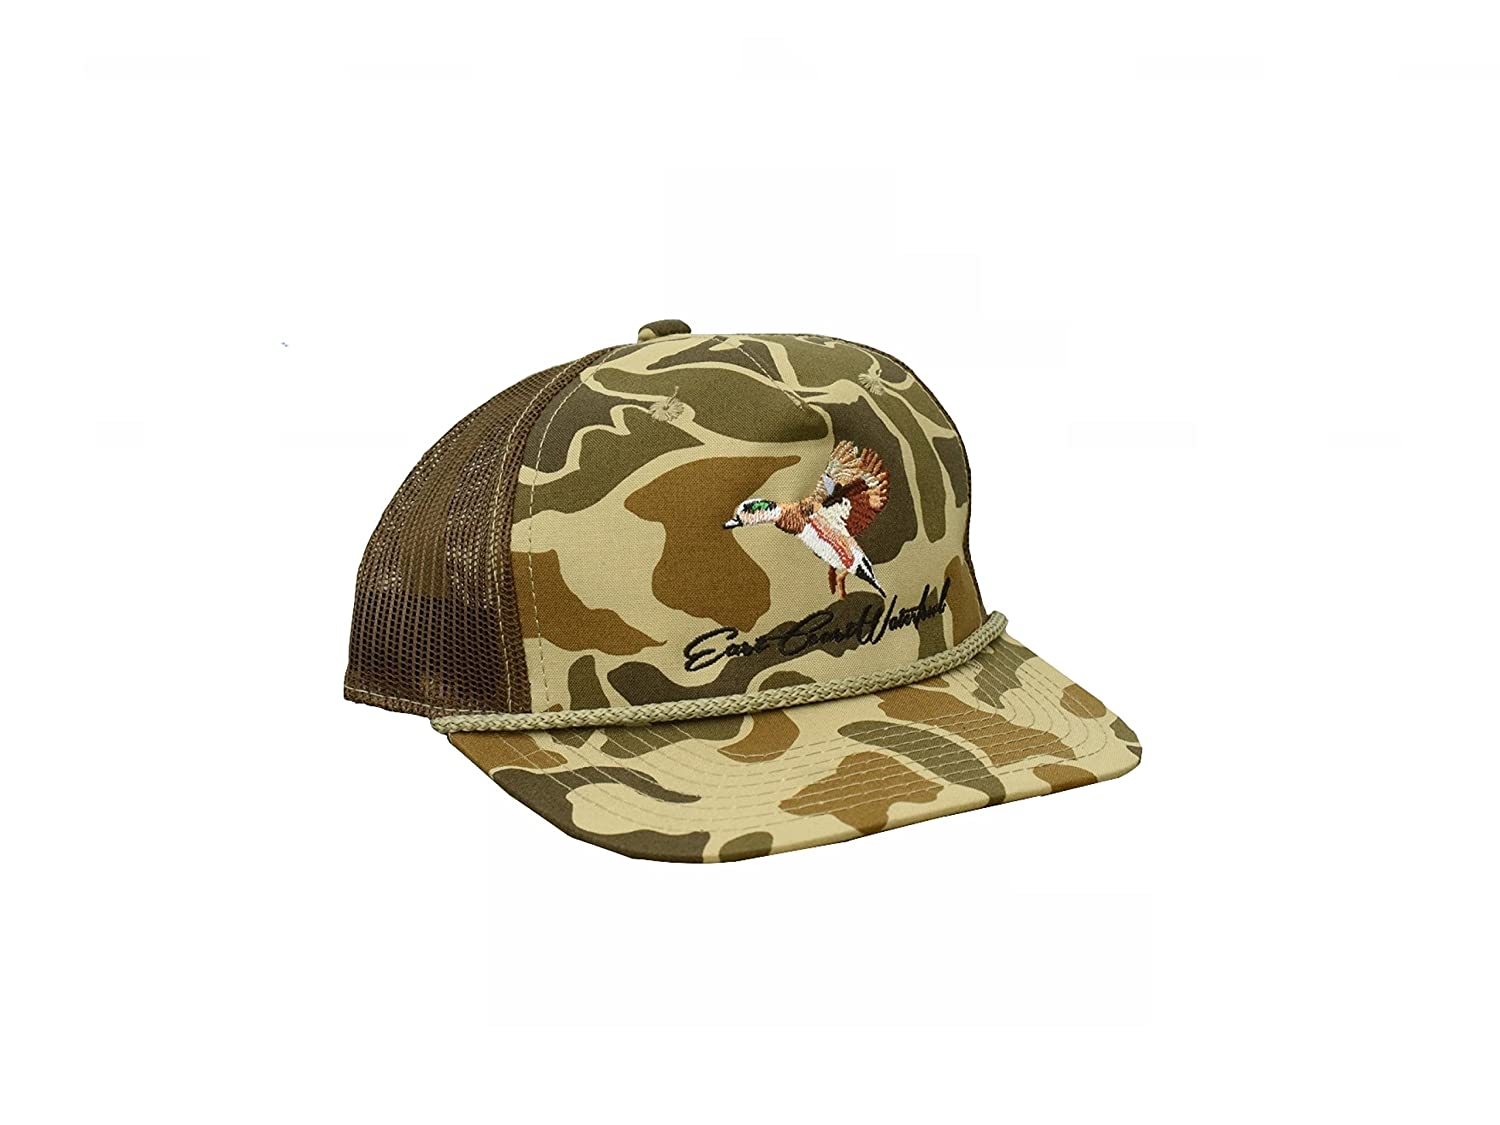 623a9a160 Amazon.com: Hunting and Fishing Depot Old School Camo Wigeon Trucker ...